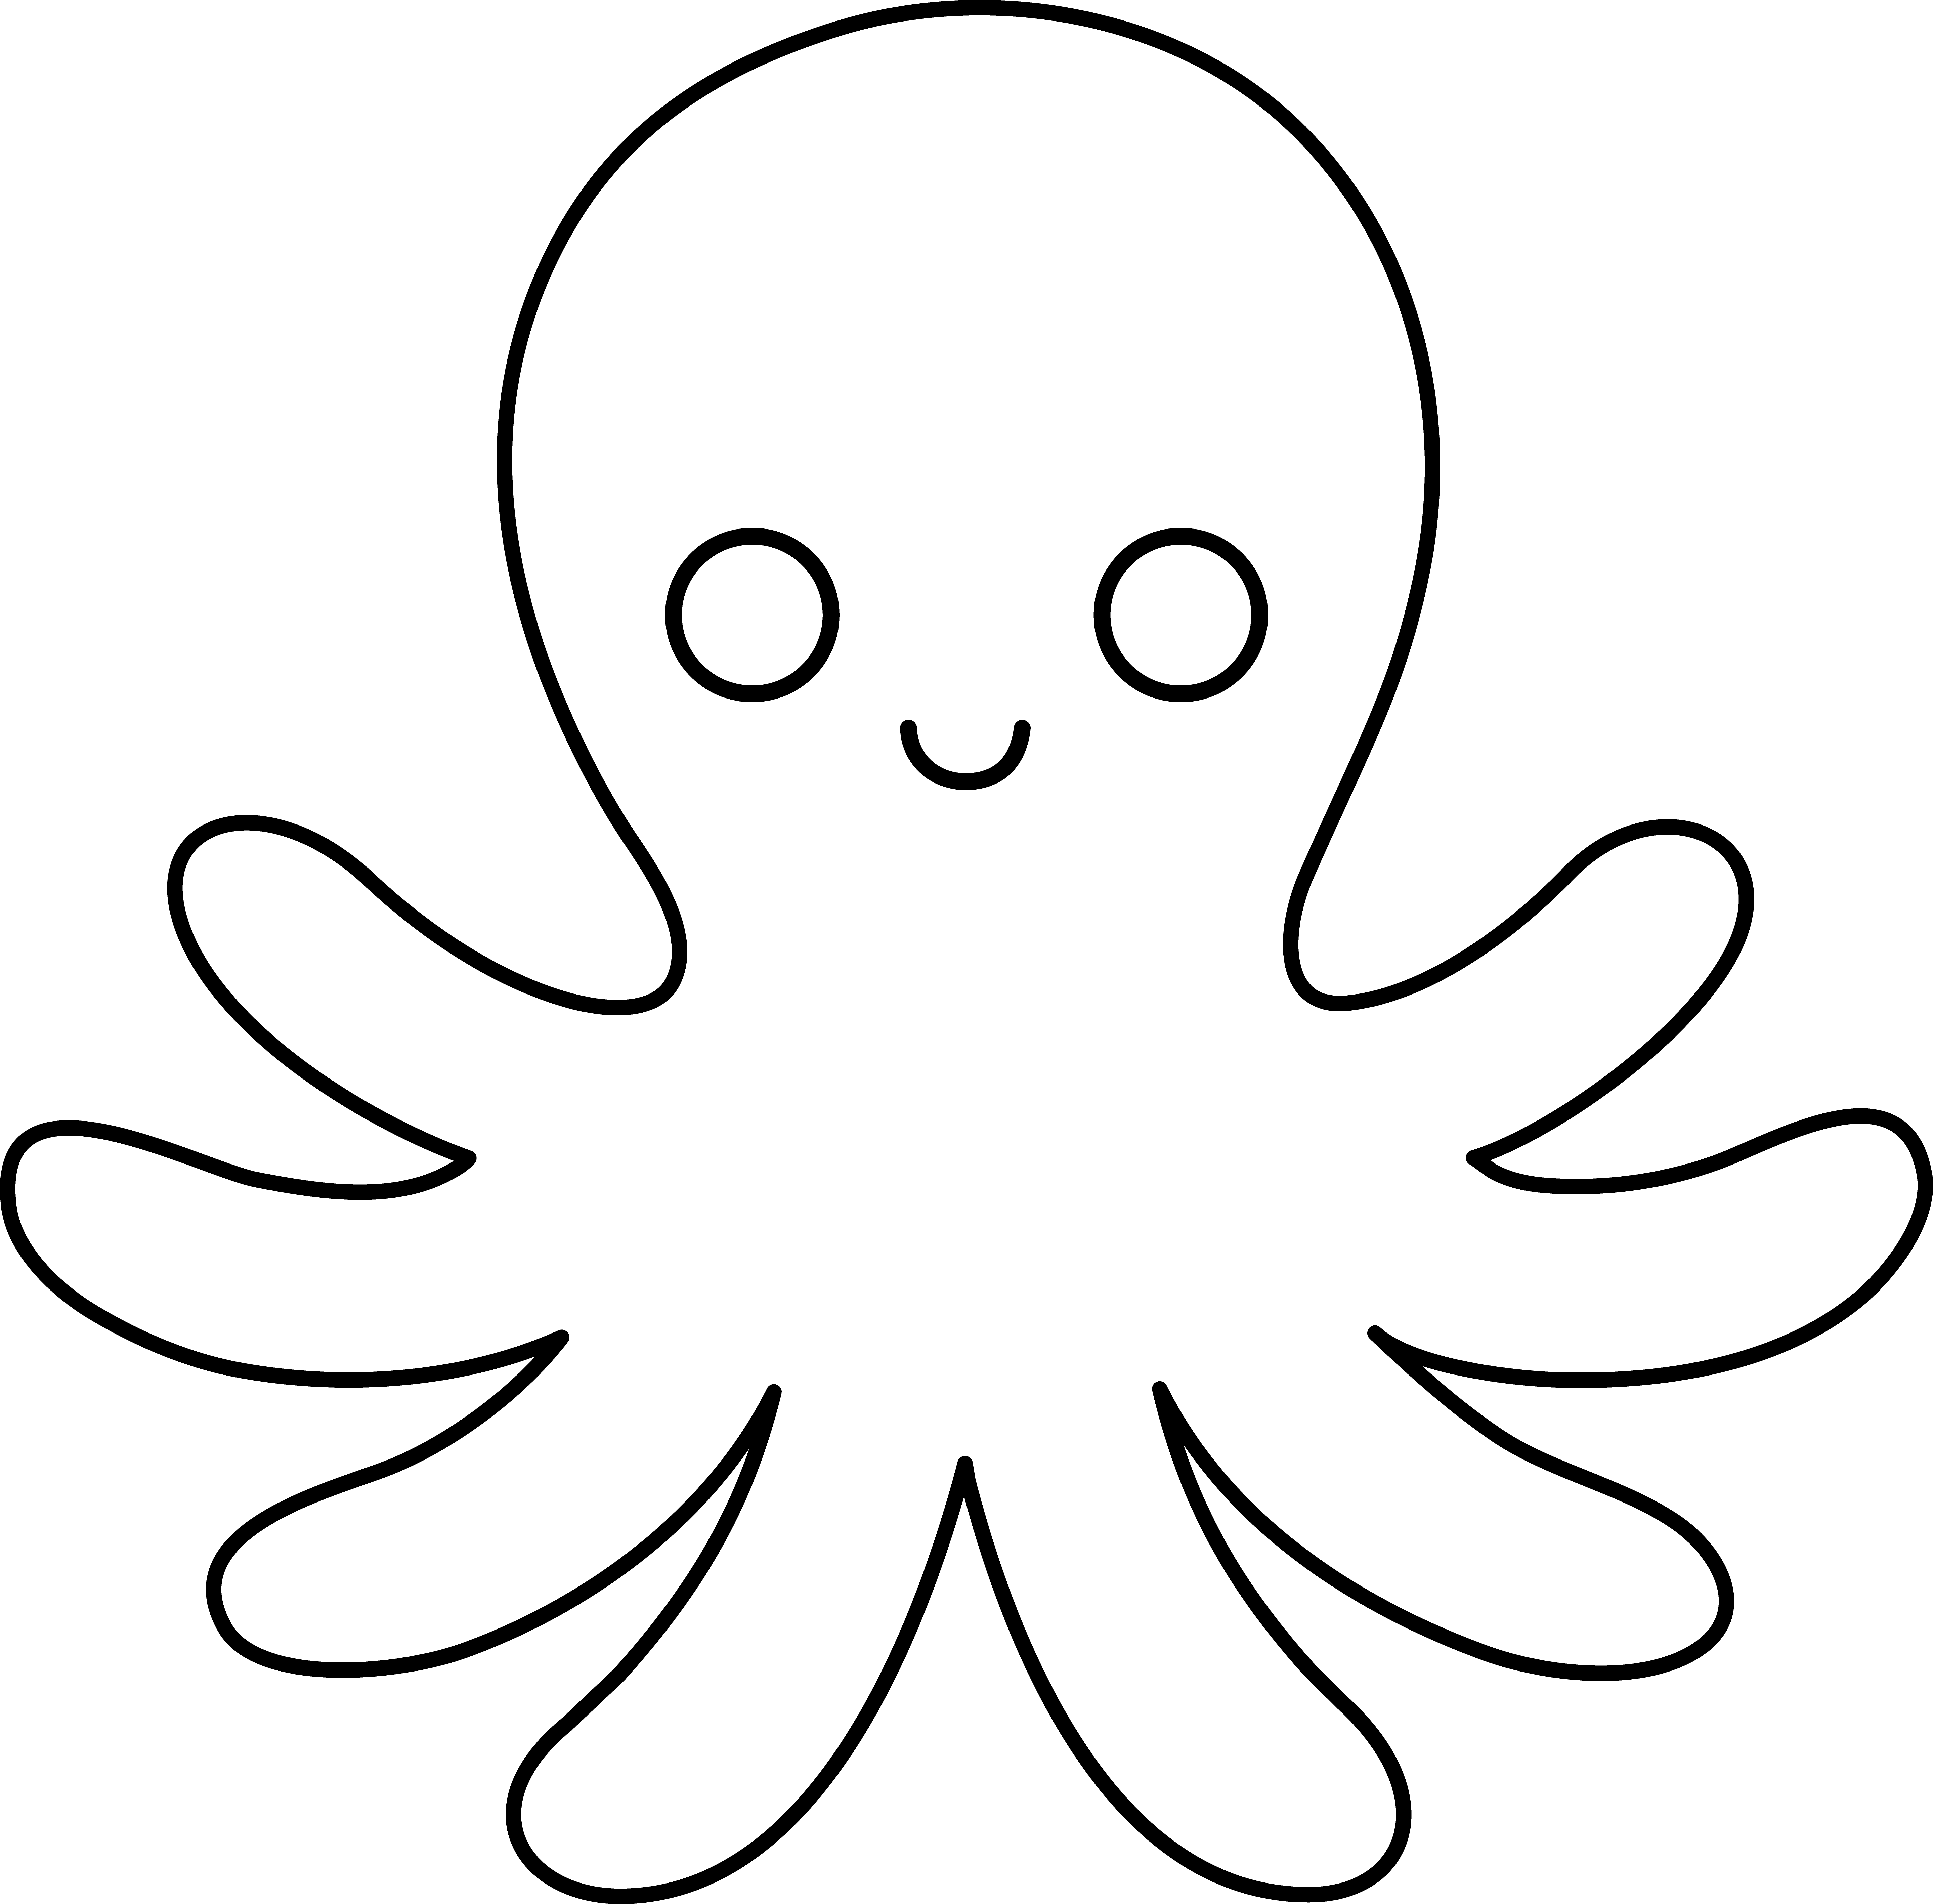 Black and white panda. Octopus clipart mimic octopus banner black and white stock